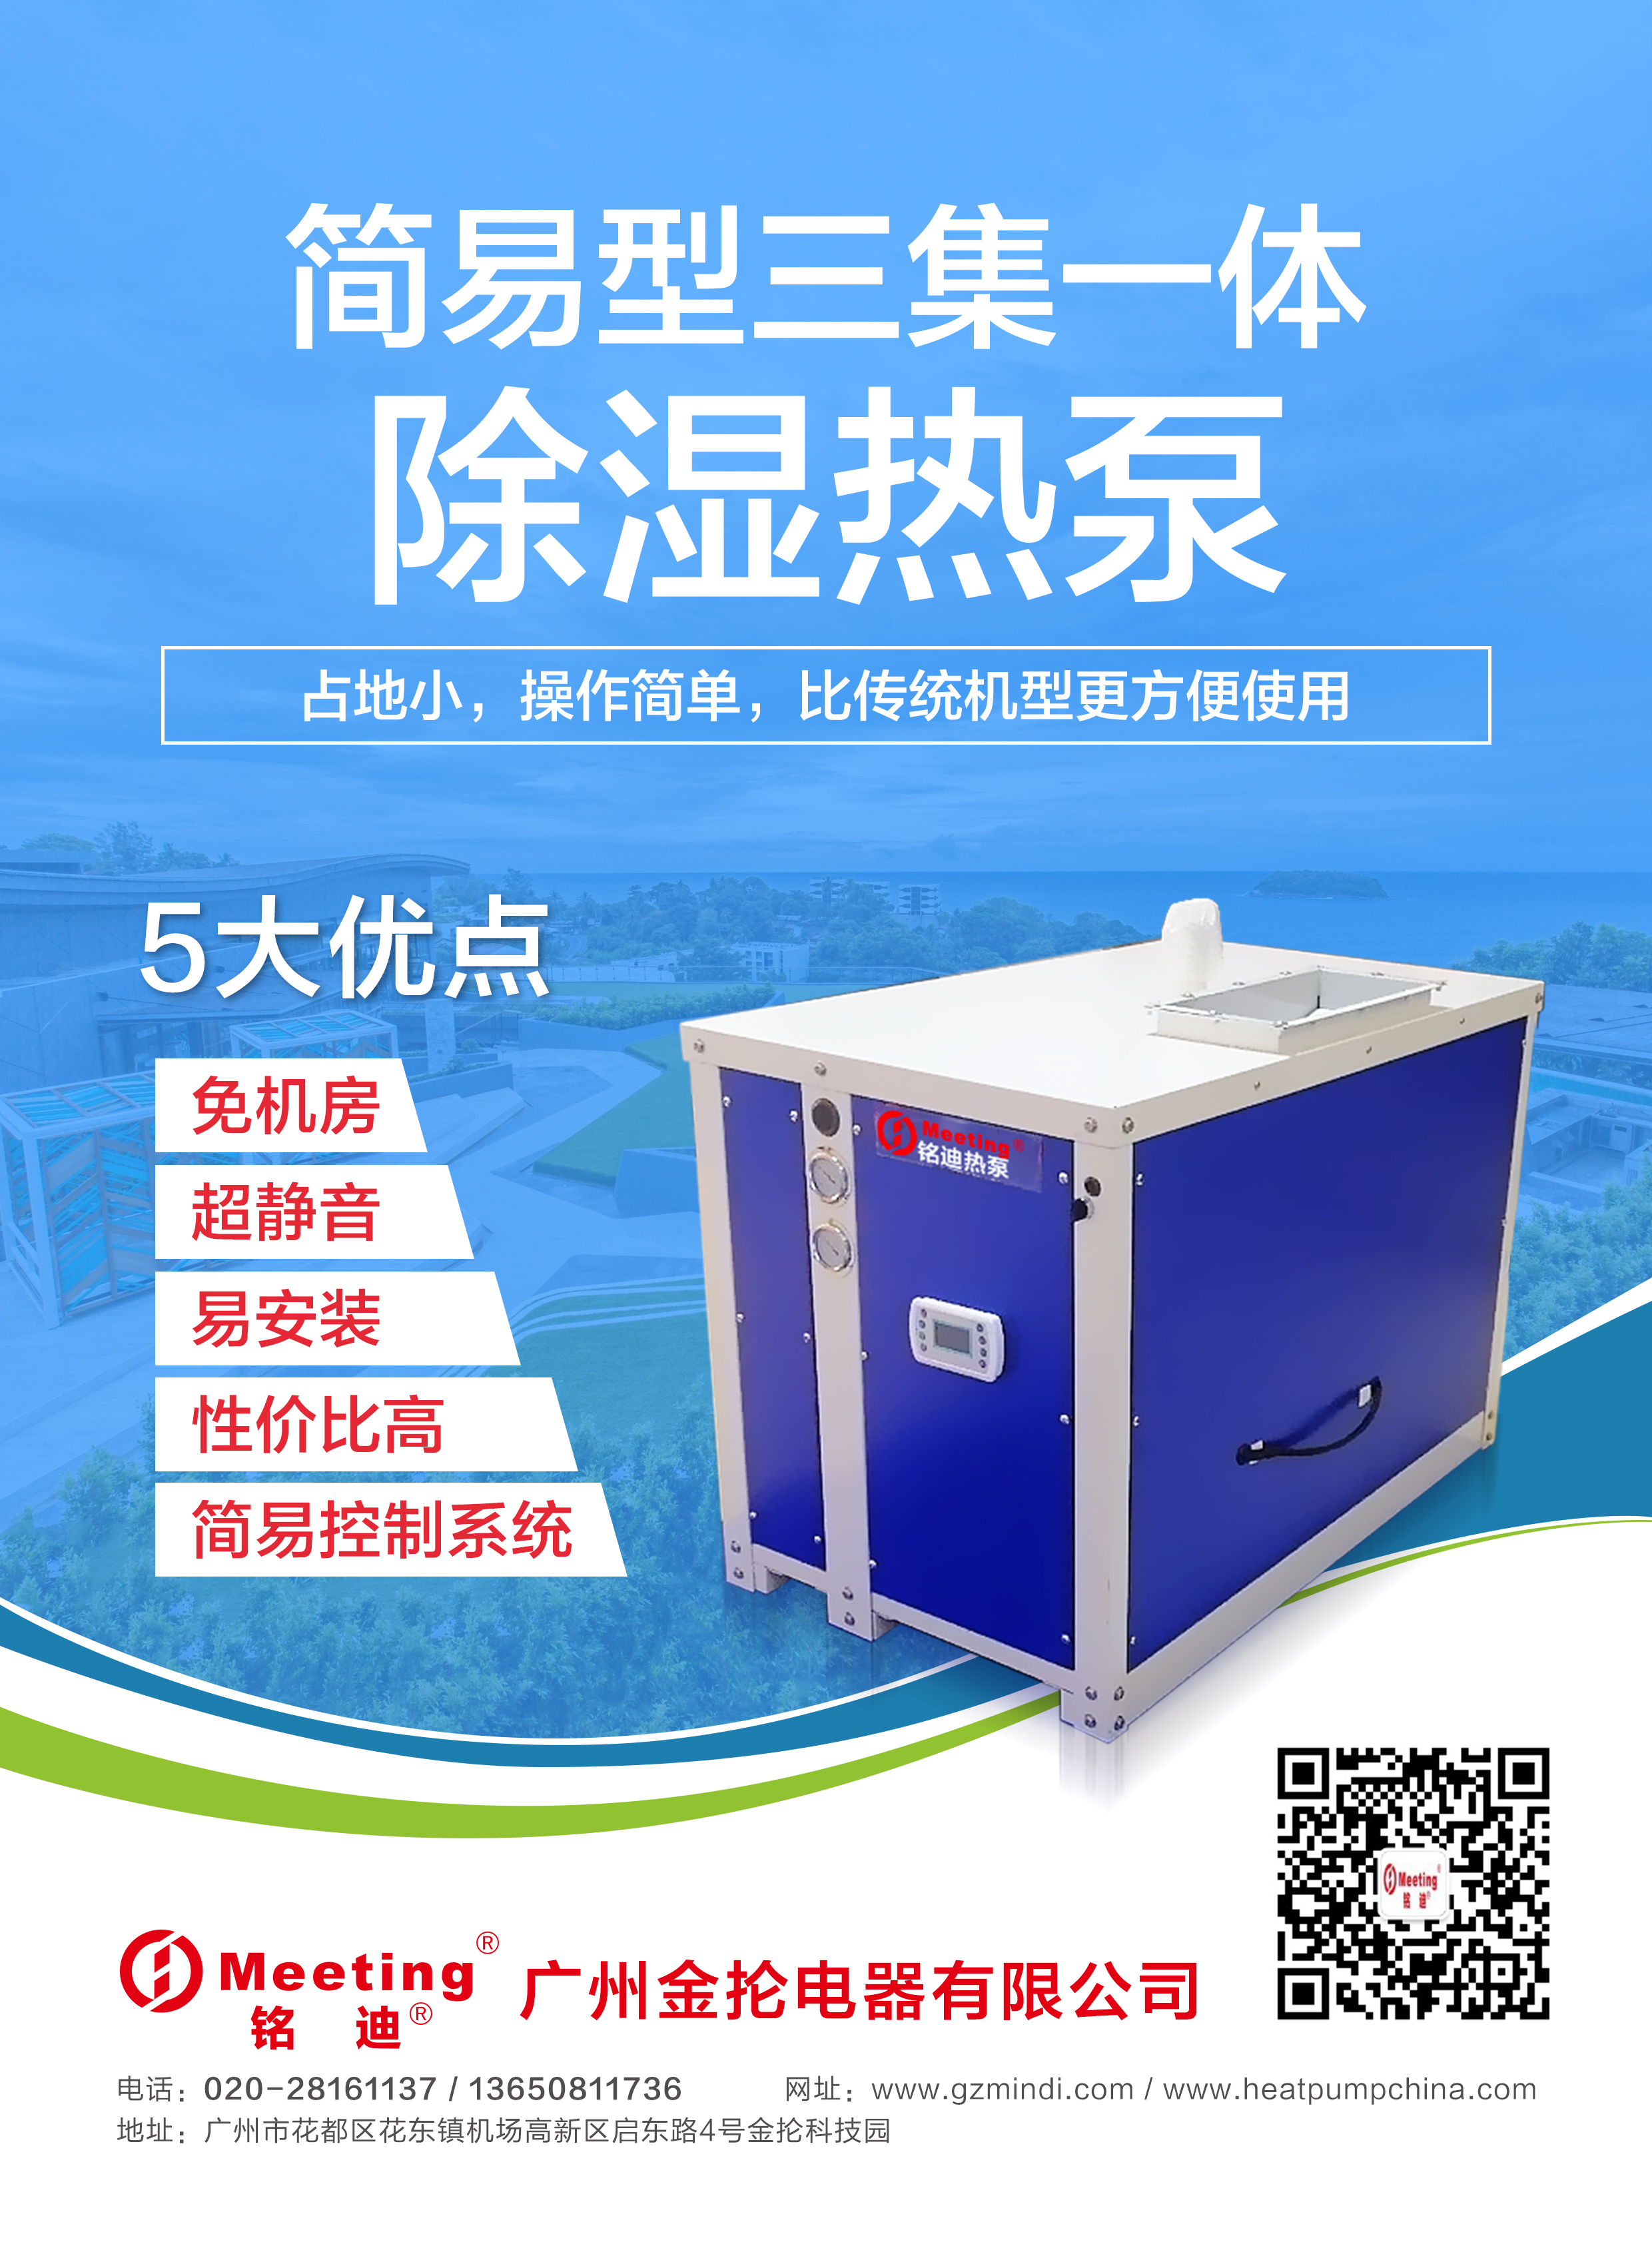 Jin Hao Ming Di simple three-in-one machine listed